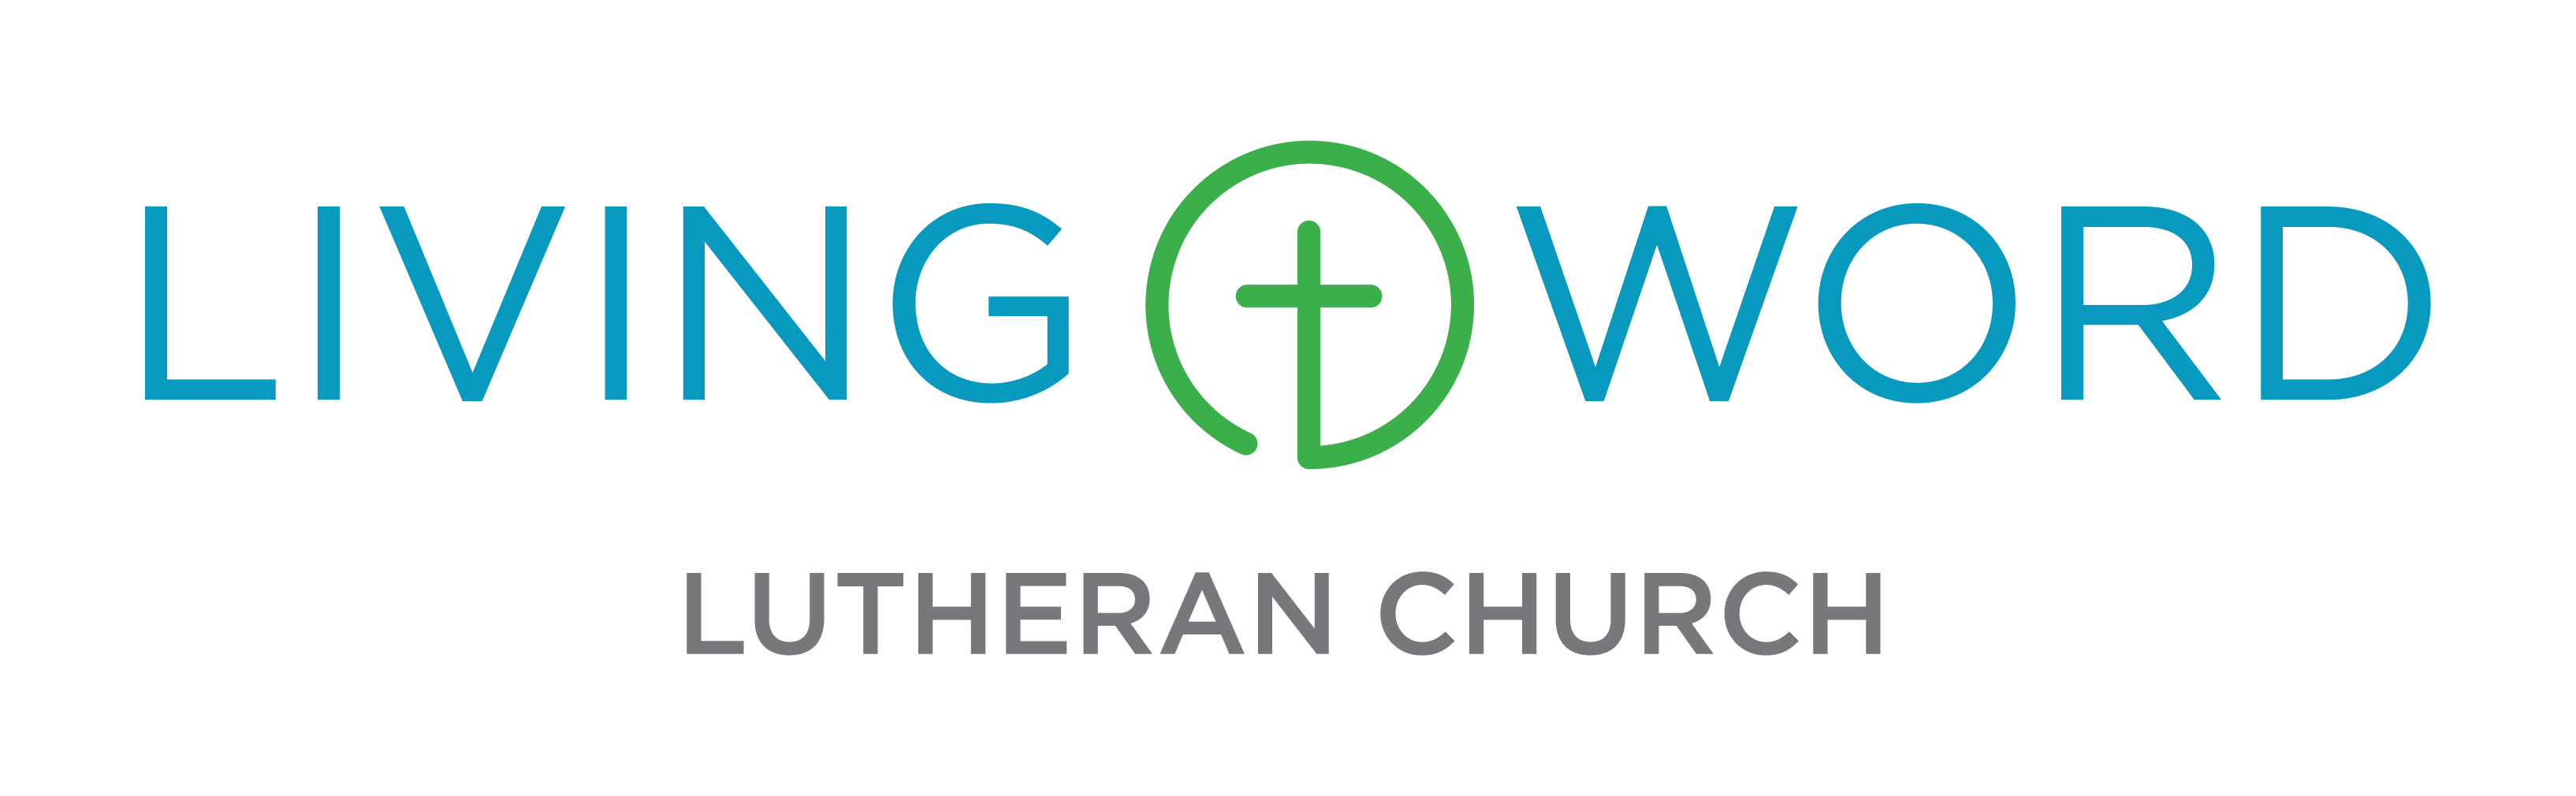 Living Word Church Logo-01